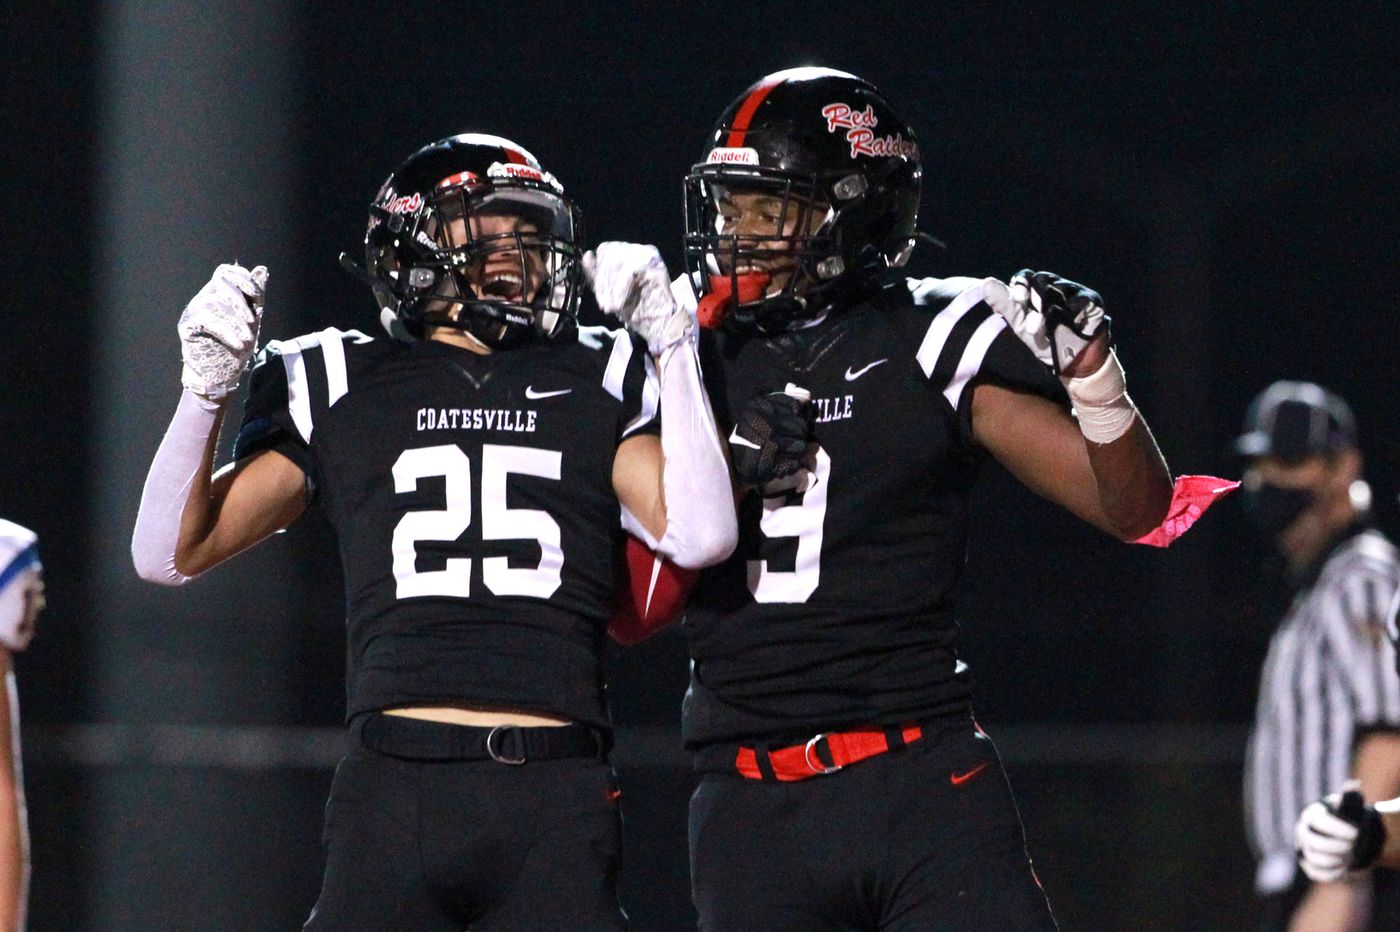 Coatesville beats Downingtown East, 20-14, to clinch first in Ches-Mont National